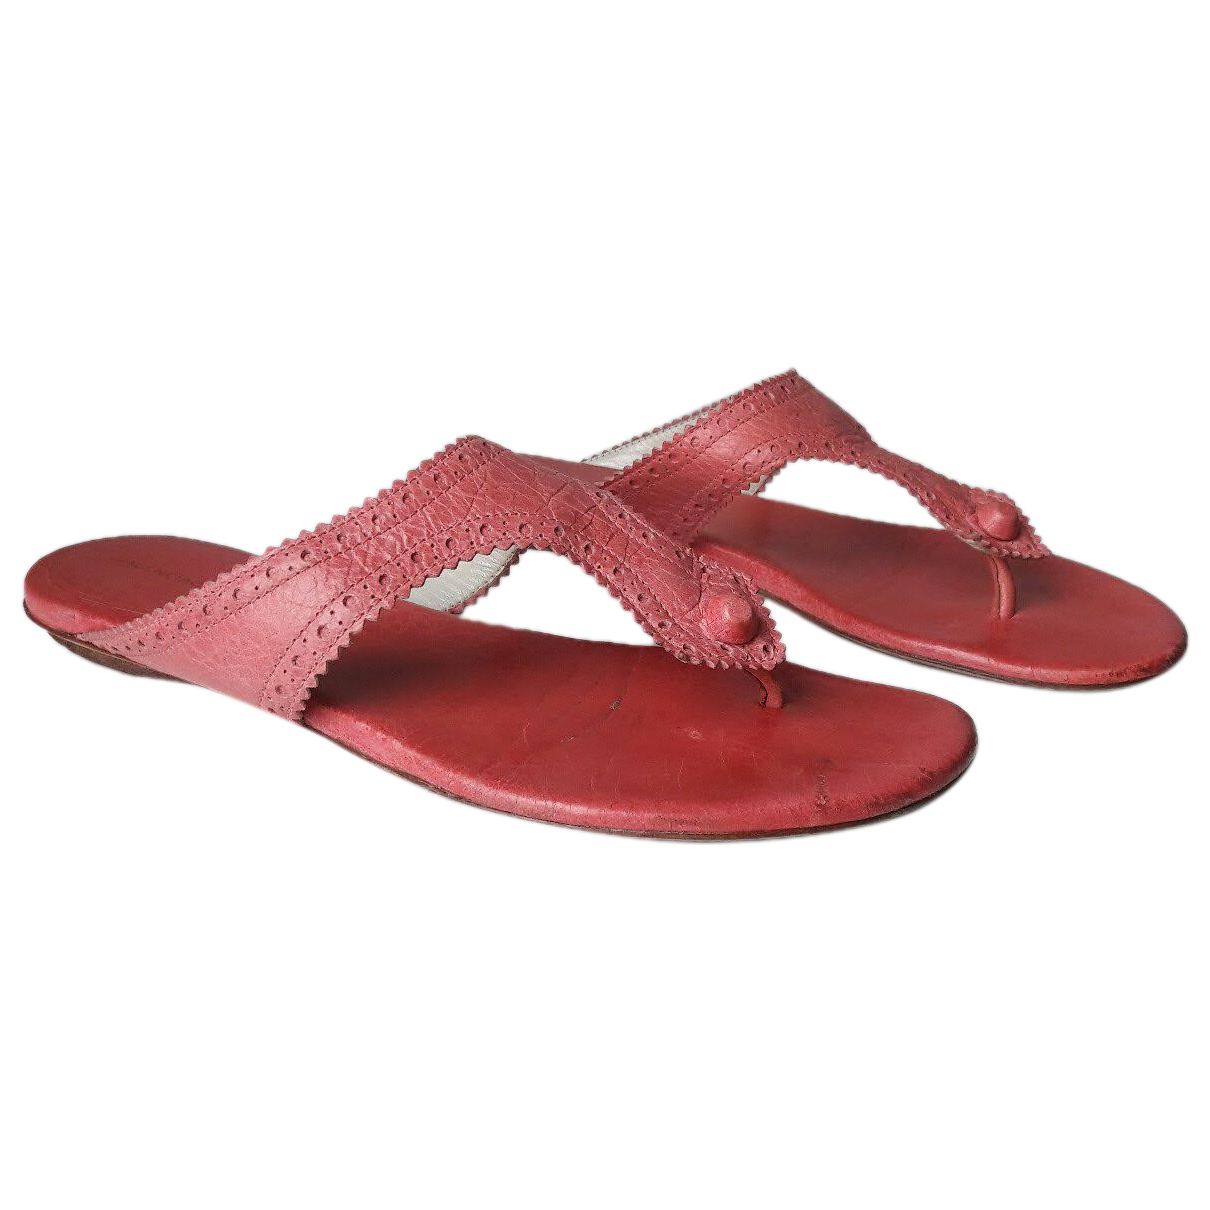 Balenciaga \N Pink Leather Sandals for Women 37.5 IT